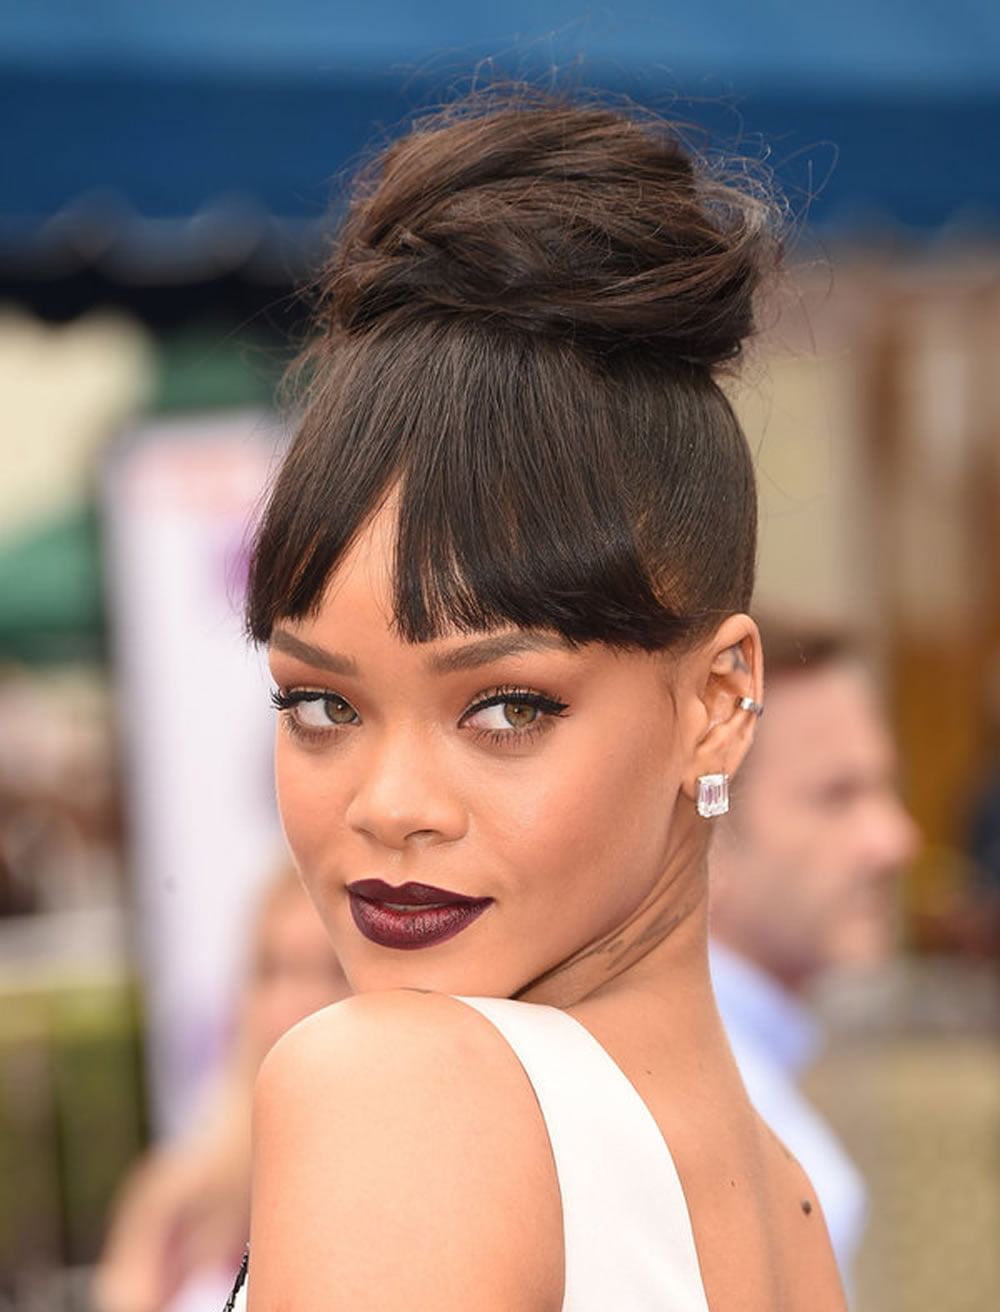 glorious 2018 updo bun hairstyles with bangs from rihanna – hairstyles